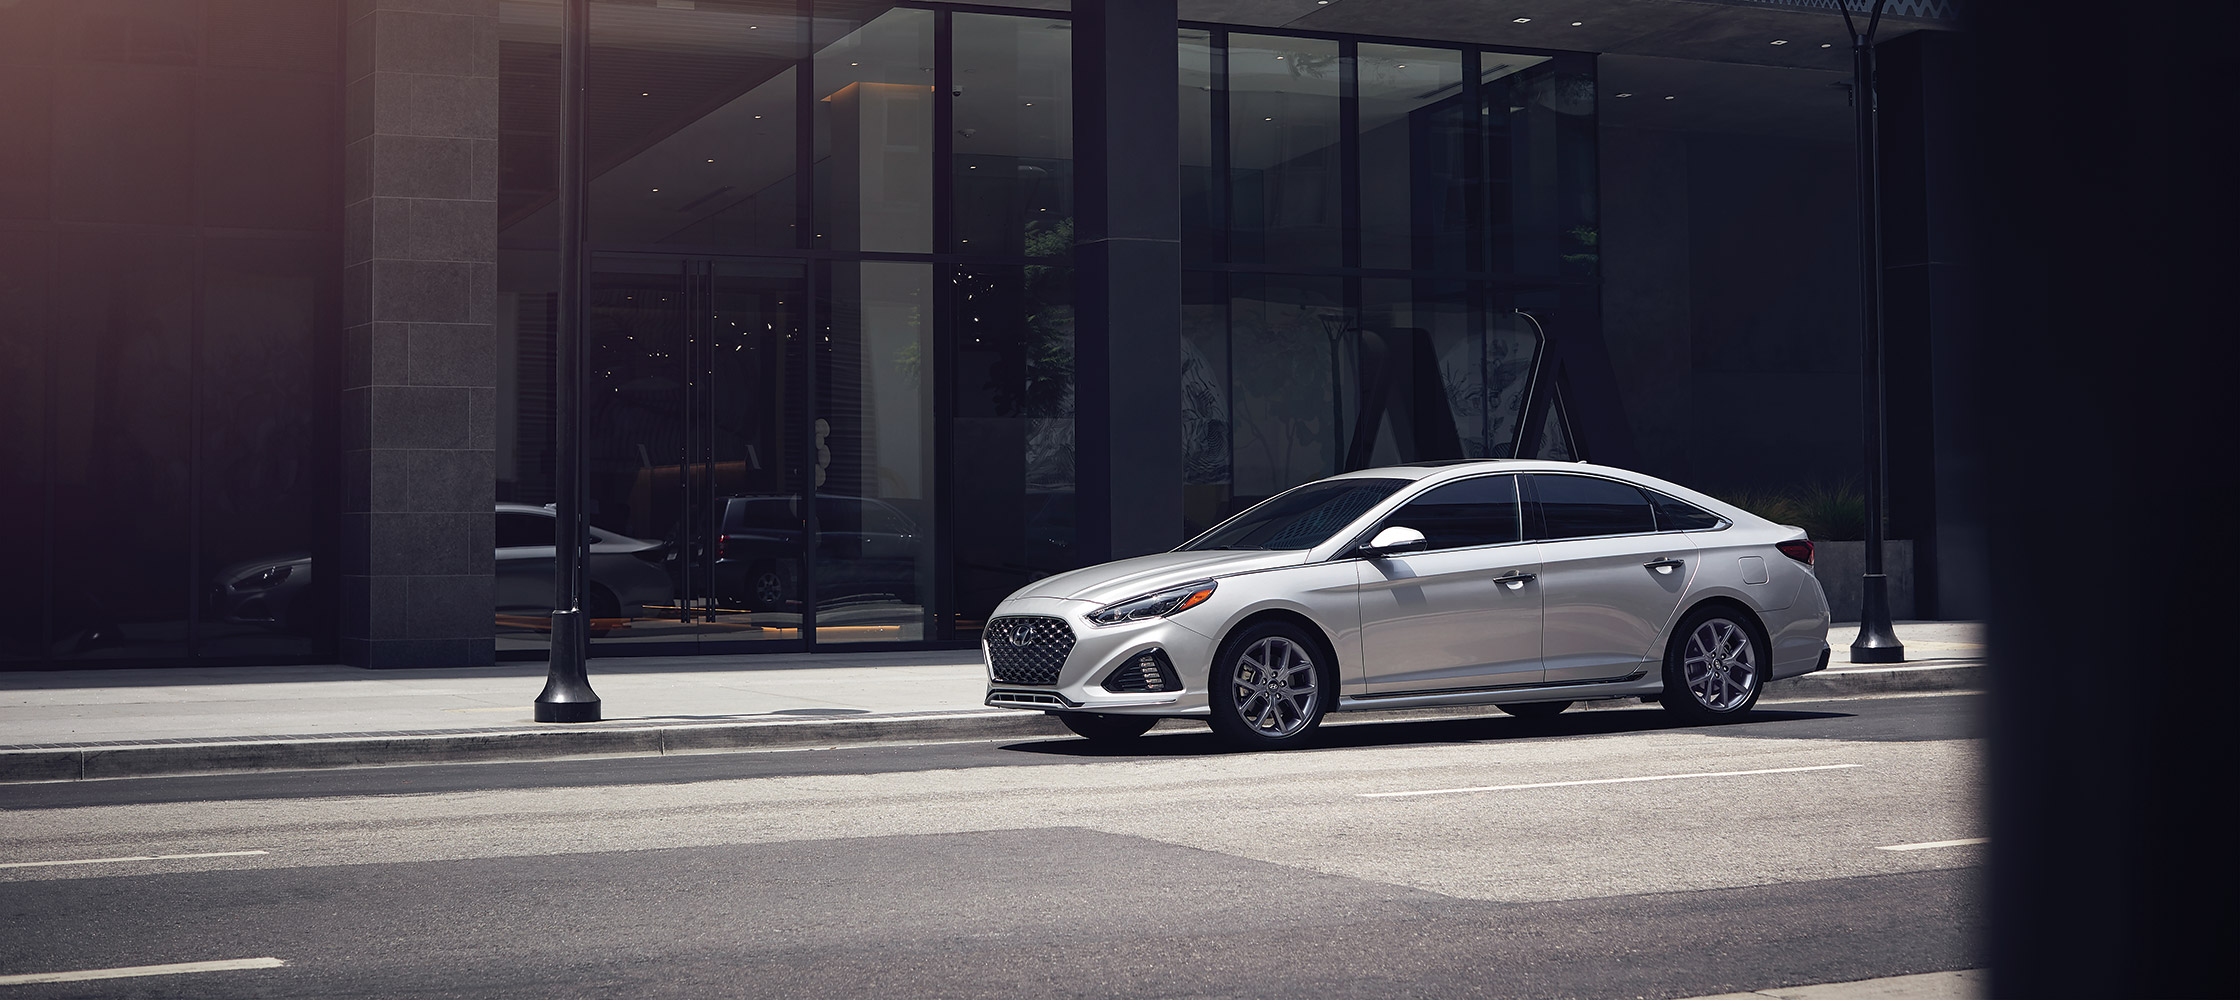 The Hyundai 2018 Sonata in ice white on a city road.